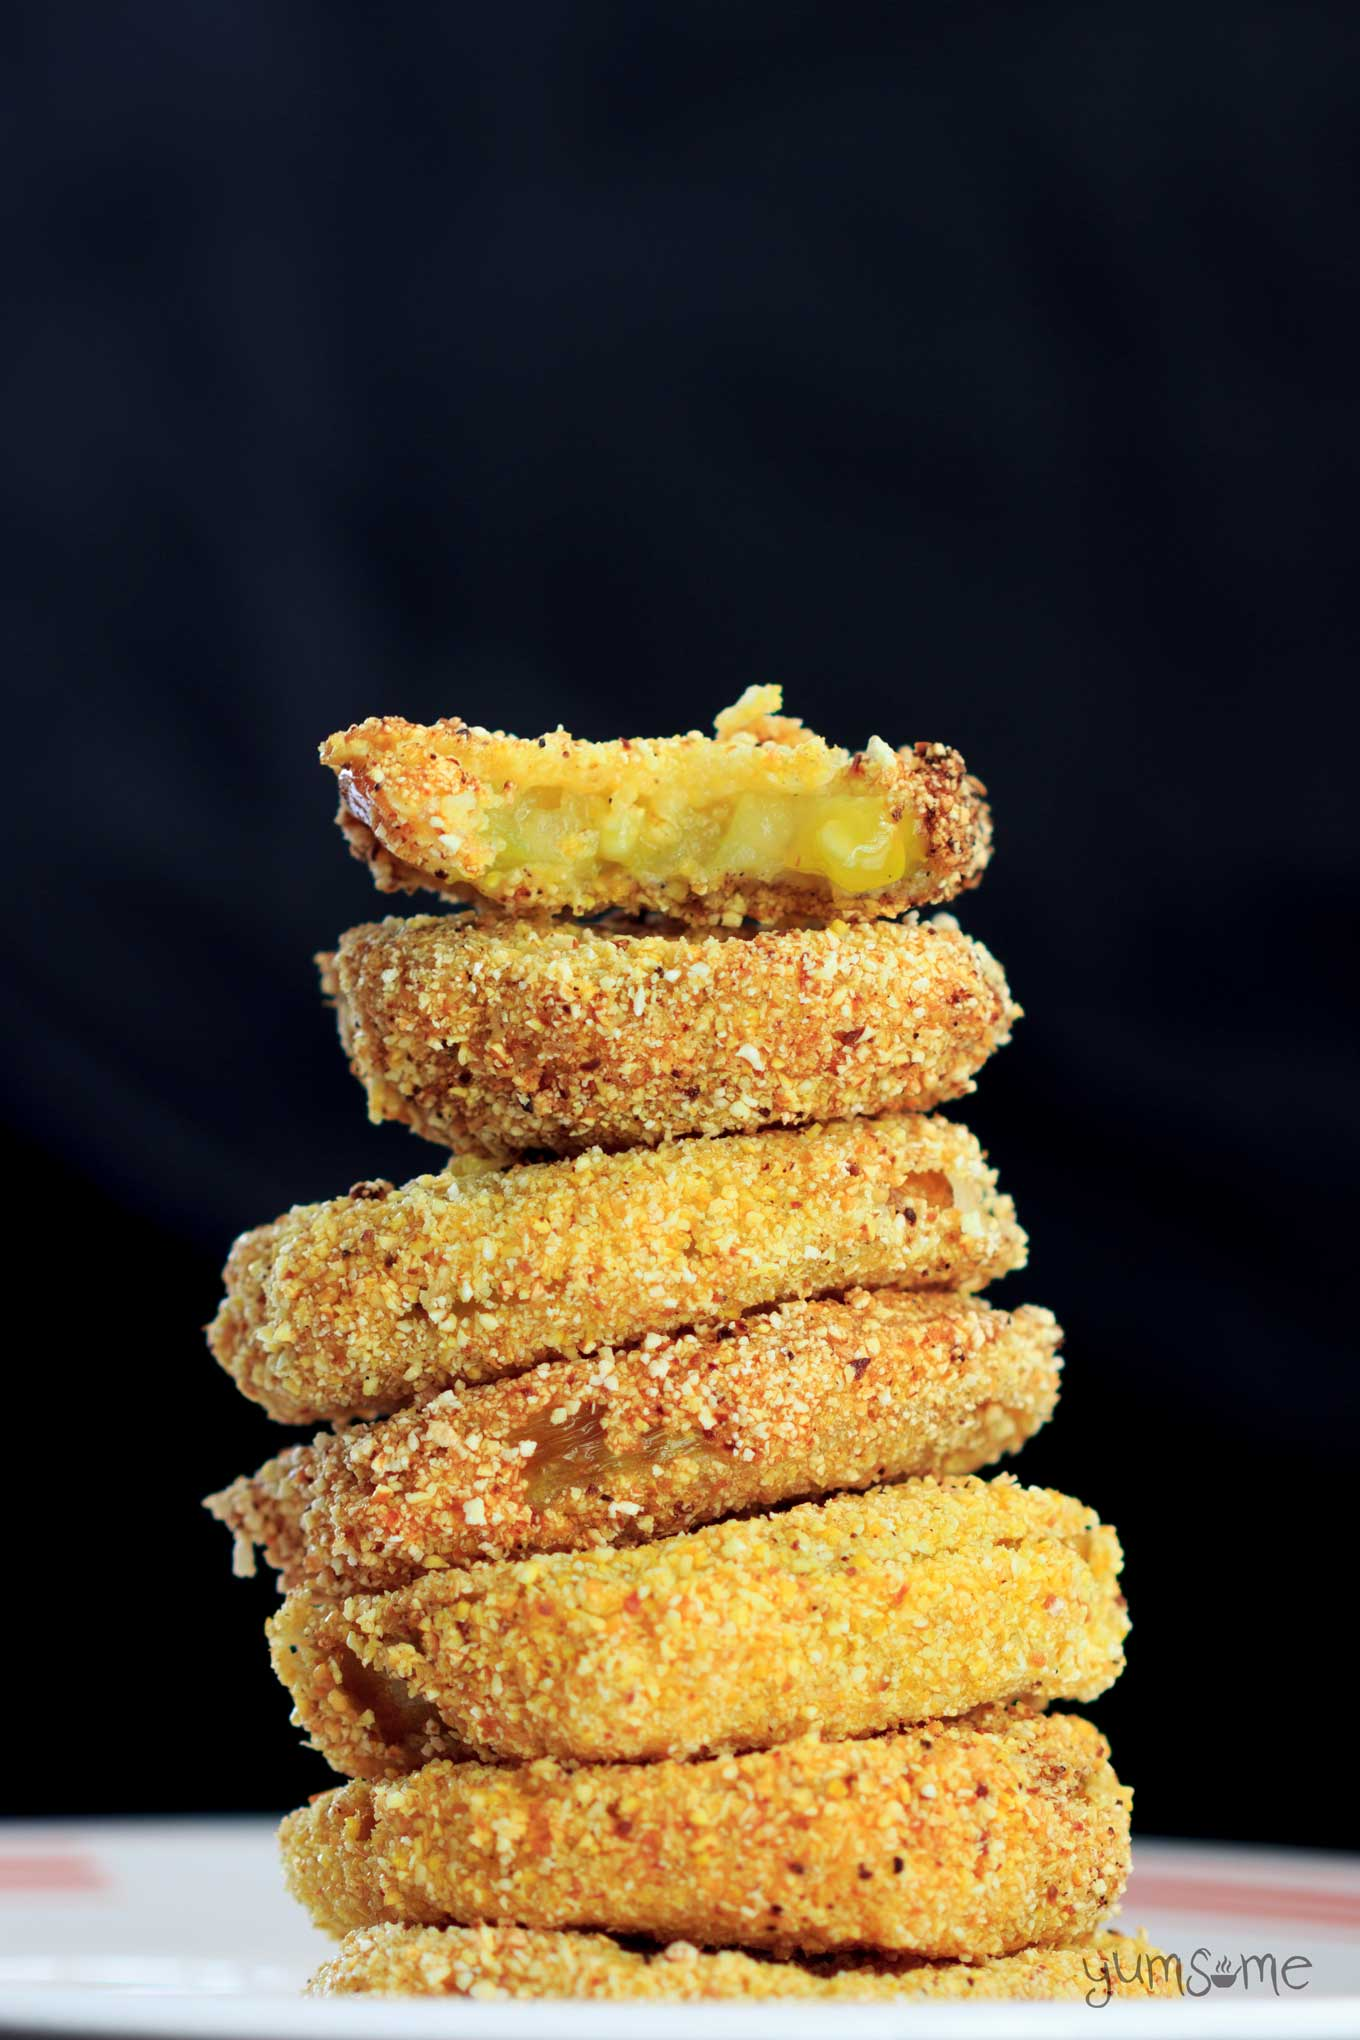 A stack of fried green tomatoes against a dark background.